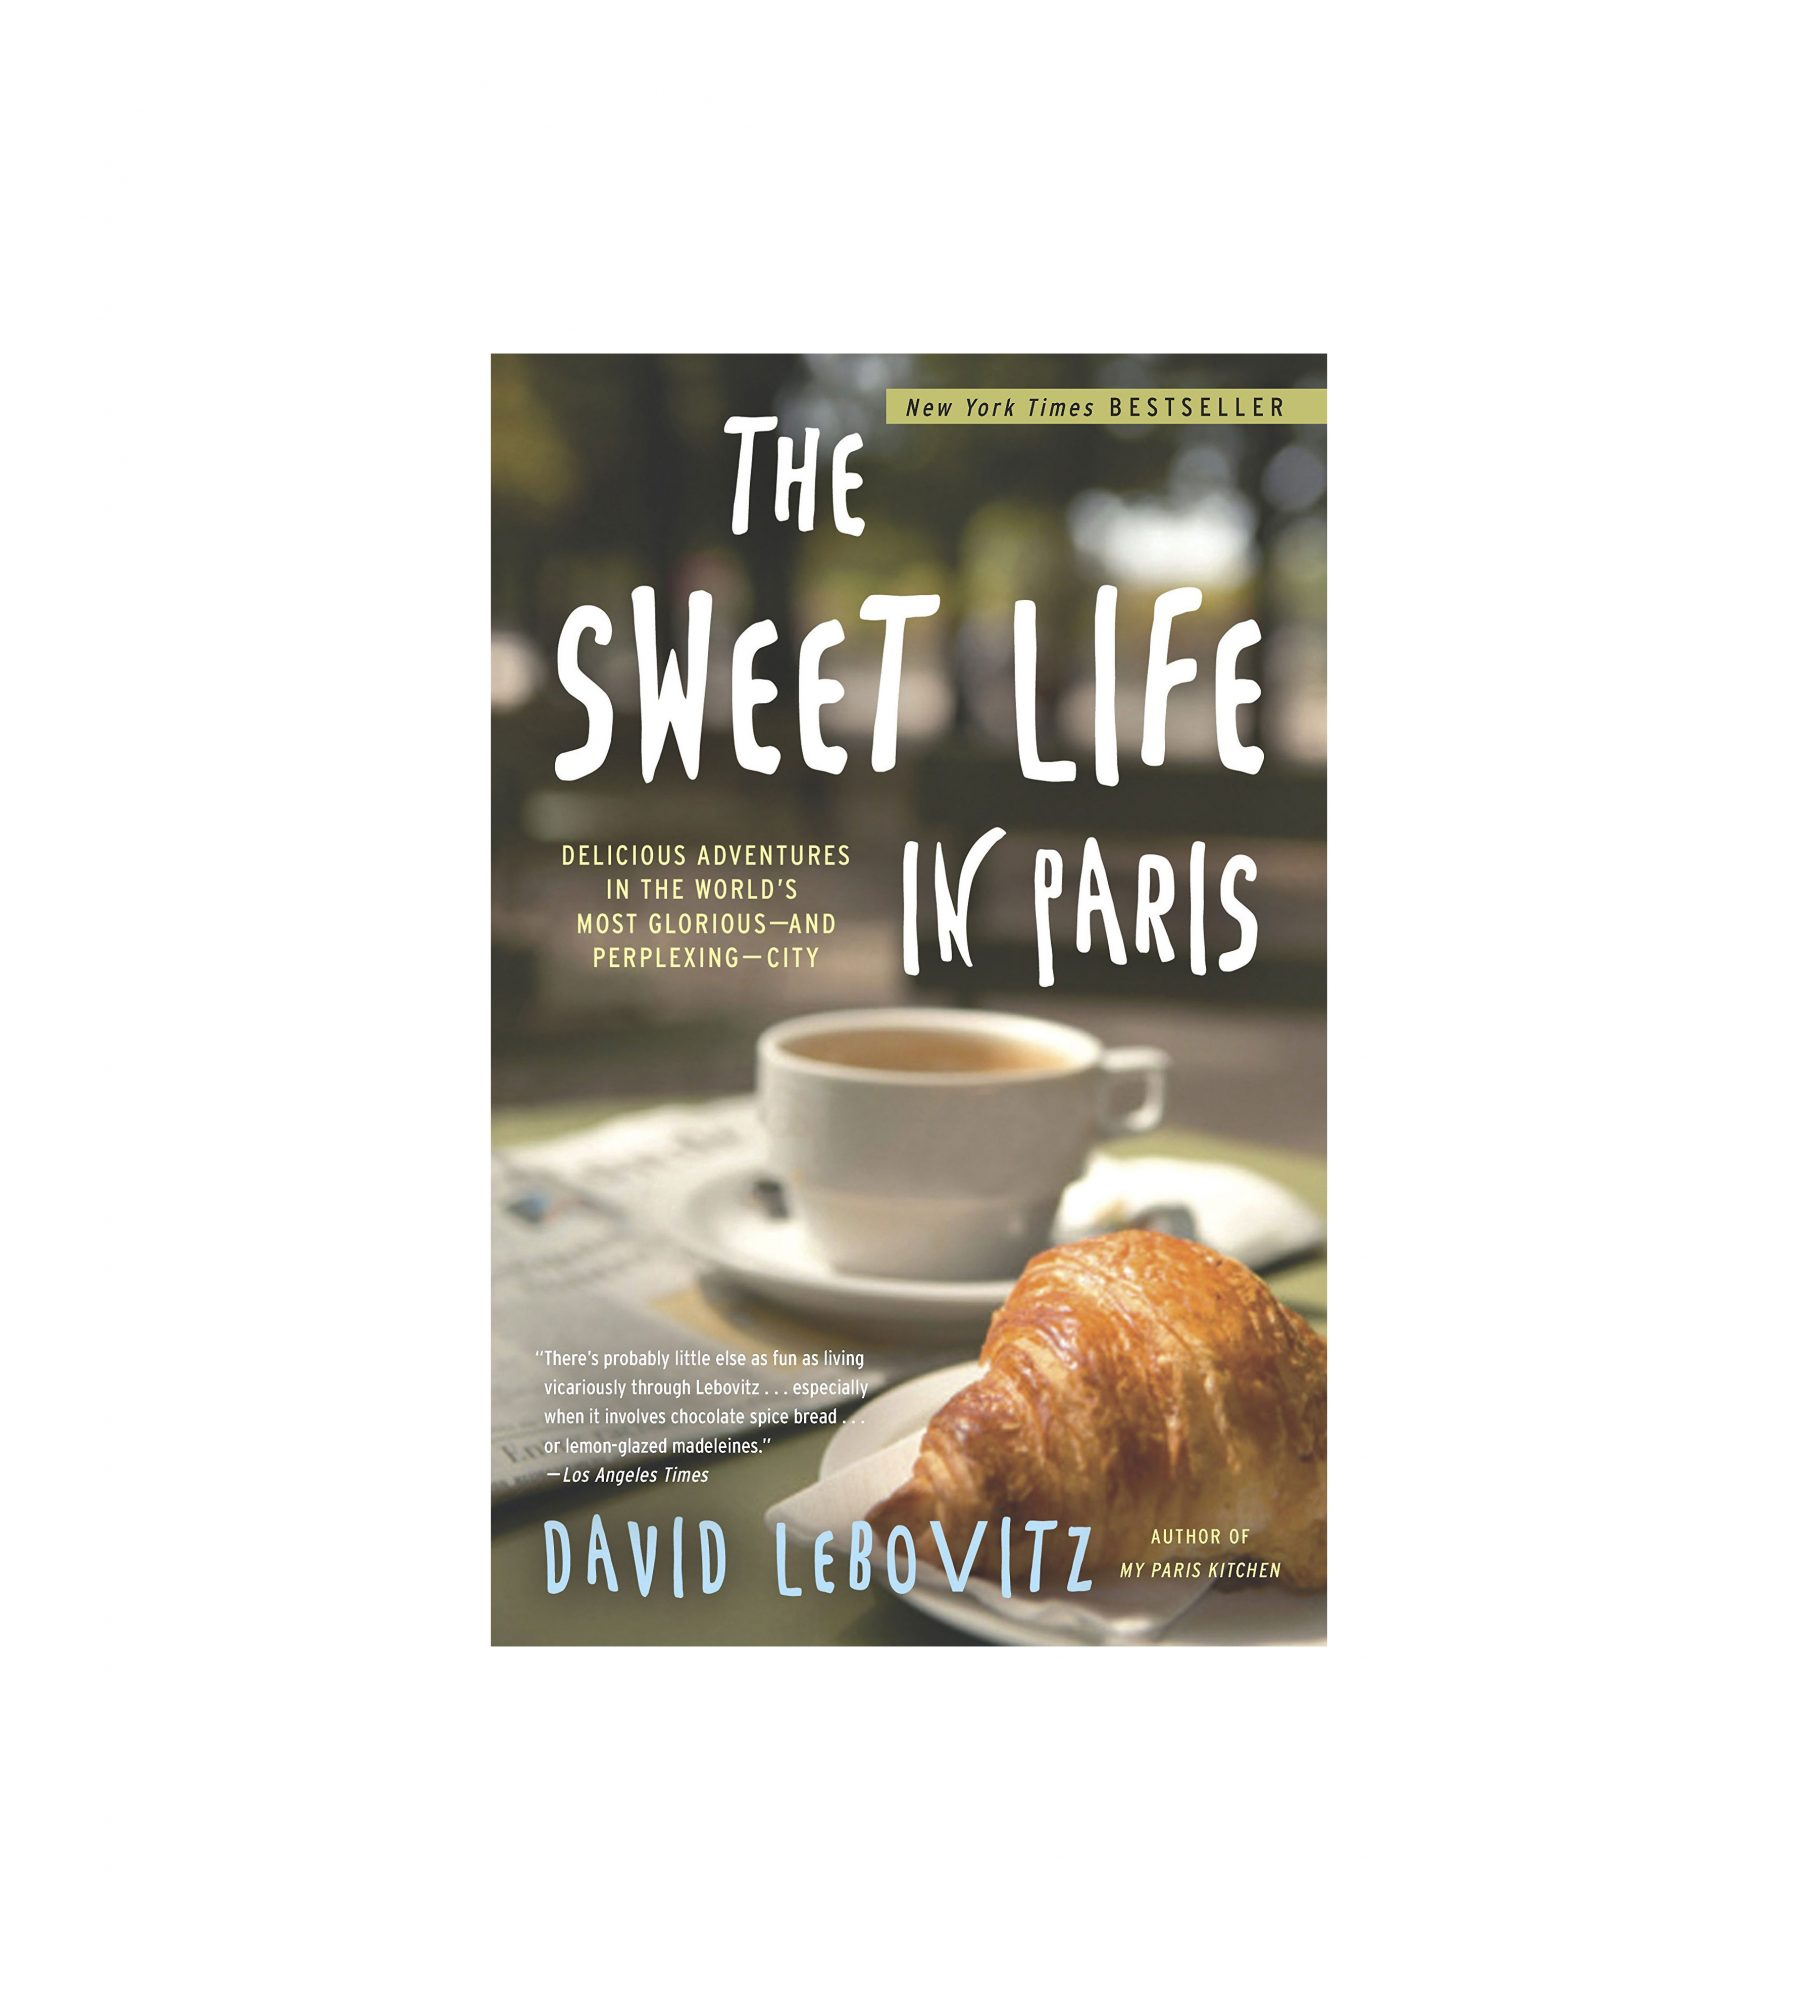 The Sweet Life in Paris: Delicious Adventures in the World's Most Glorious - and Perplexing - City, by David Lebovitz